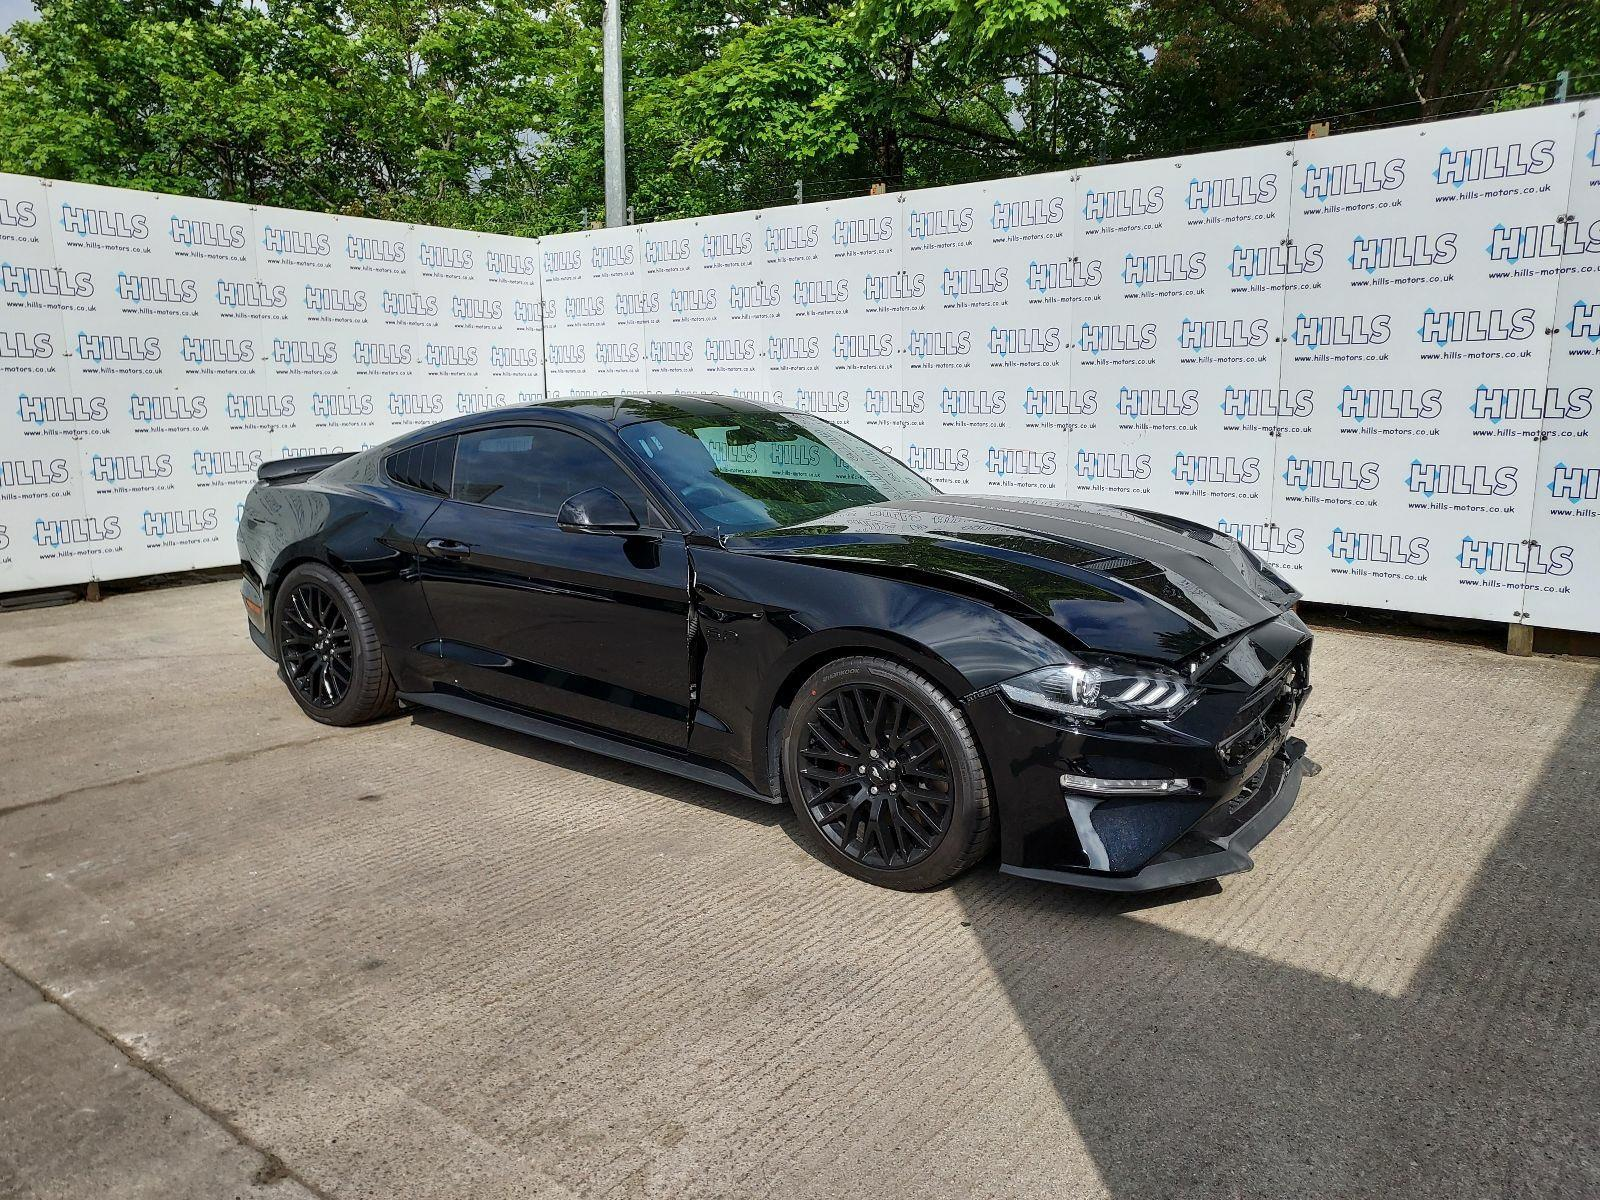 2019 Ford MUSTANG GT 4951cc Petrol Manual 6 Speed COUPE